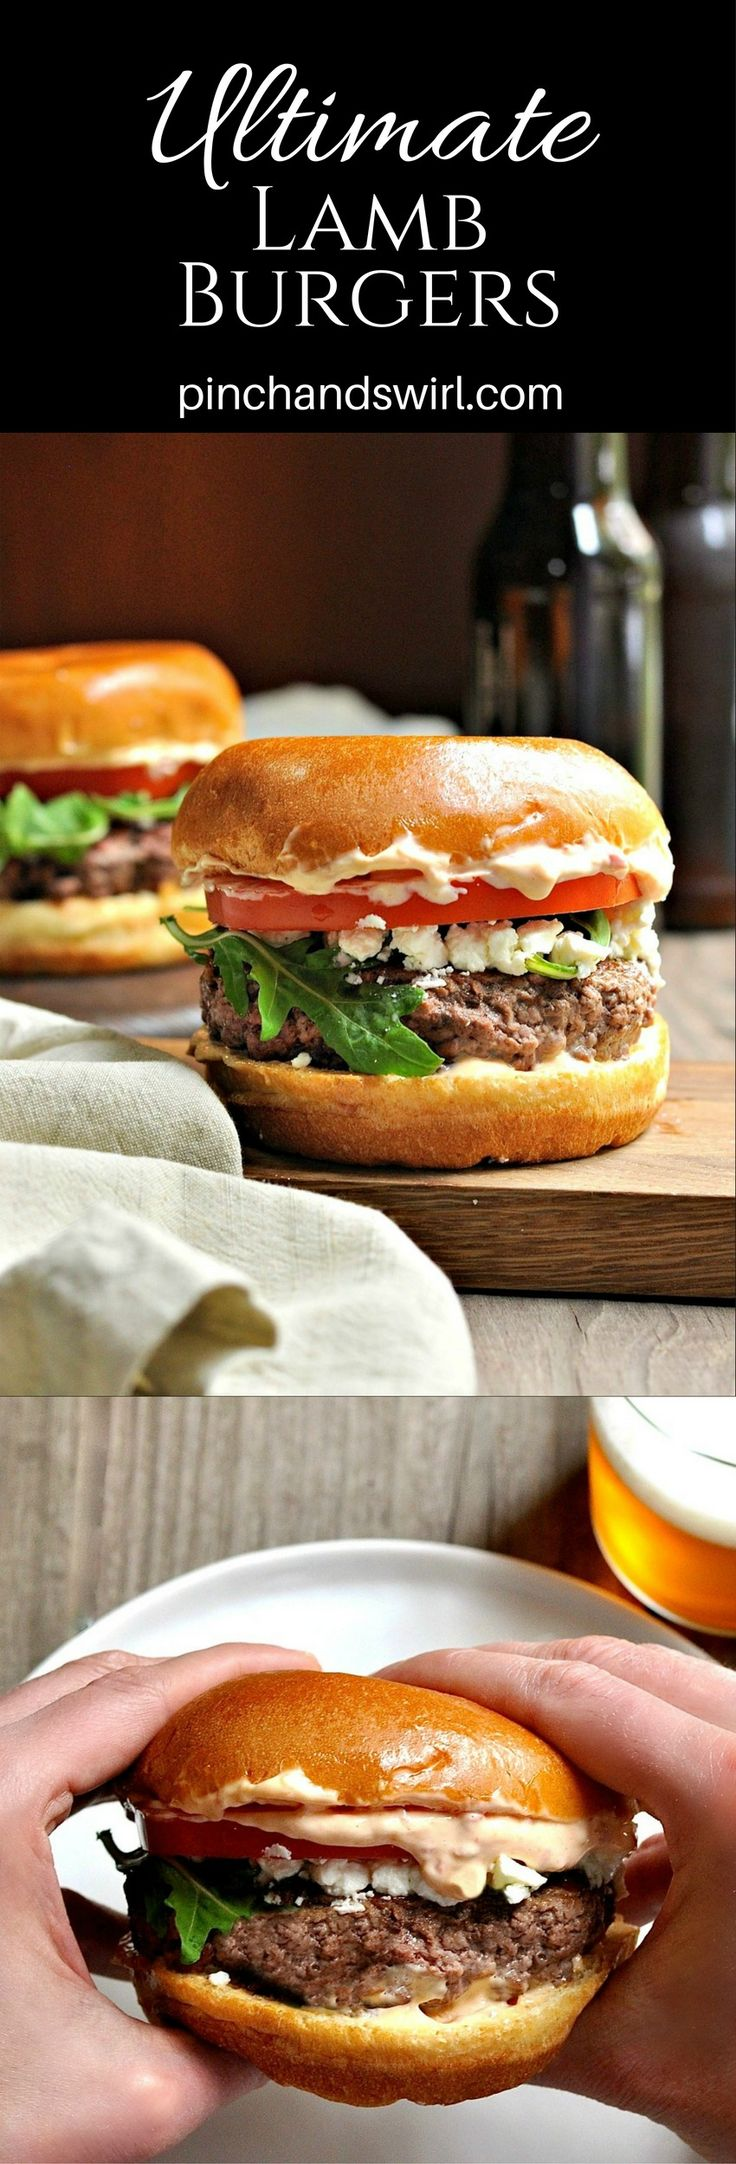 I'm not exaggerating when I call these the ultimate lamb burgers: freshly ground lamb shaped, seasoned and cooked to perfection, creamy feta cheese, peppery arugula, sweet tomato and a feather light brioche bun slathered with harissa aioli.